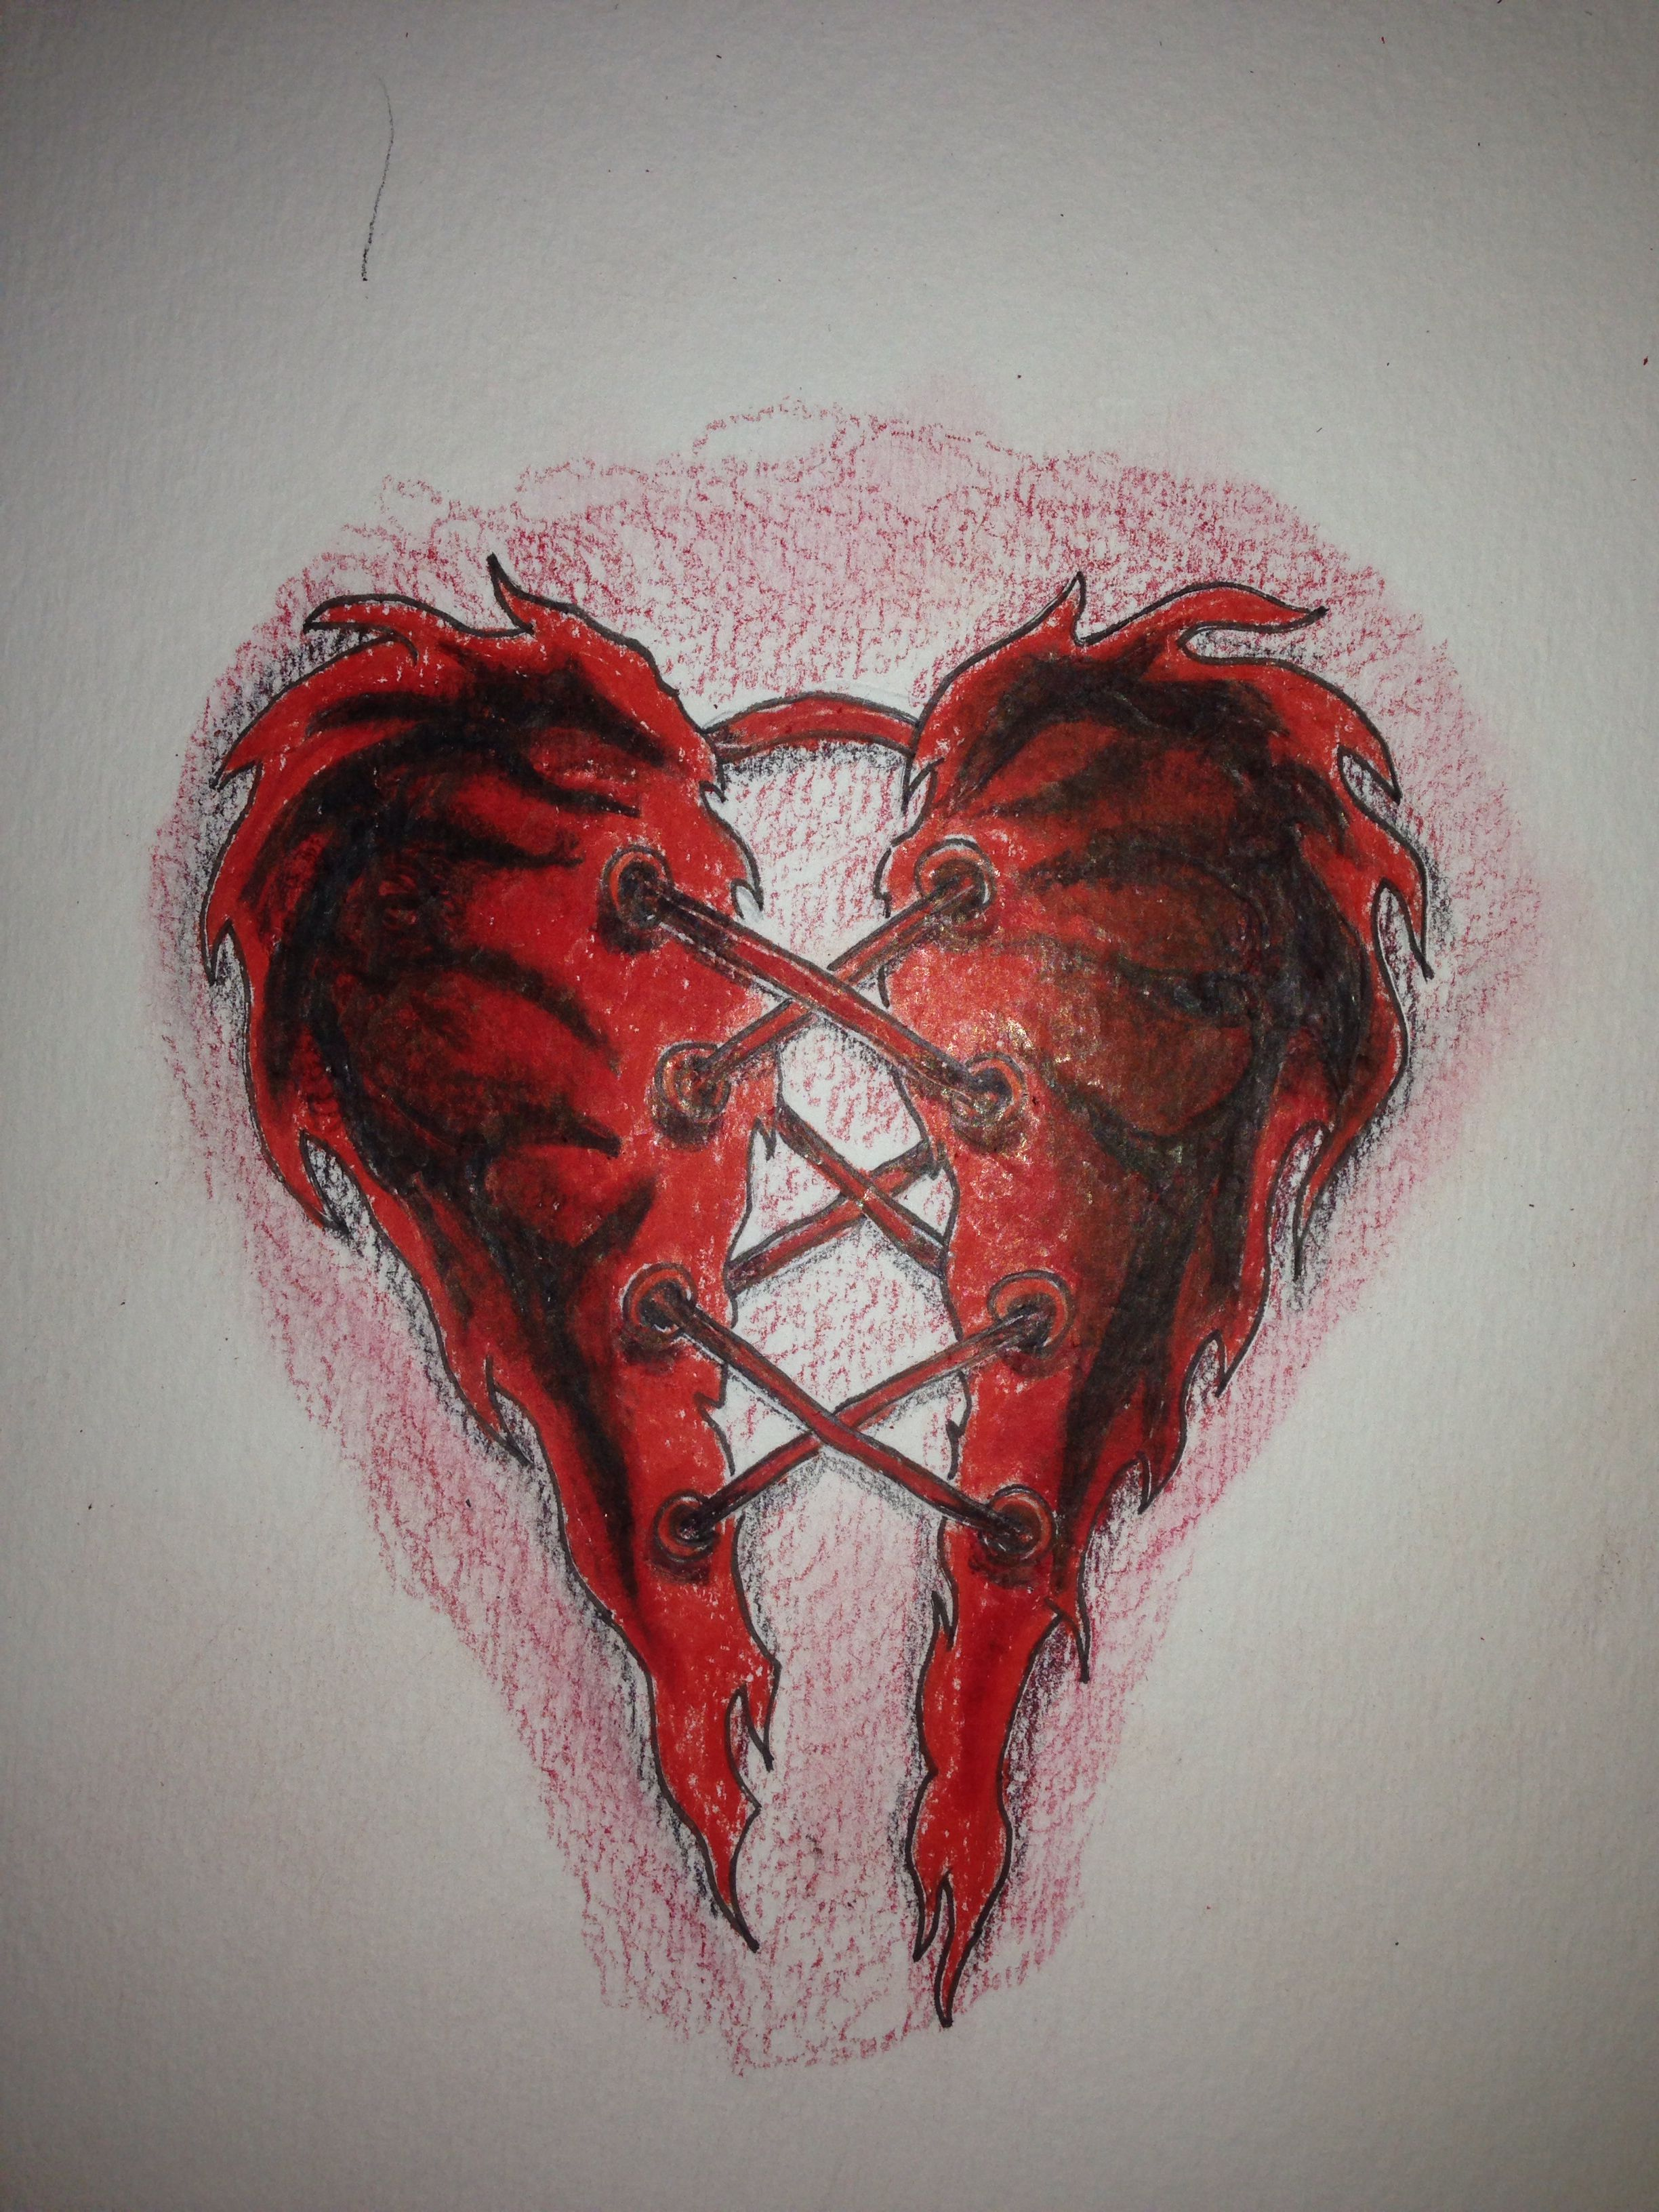 Torn heart tattoo sketch. (With images) Broken heart